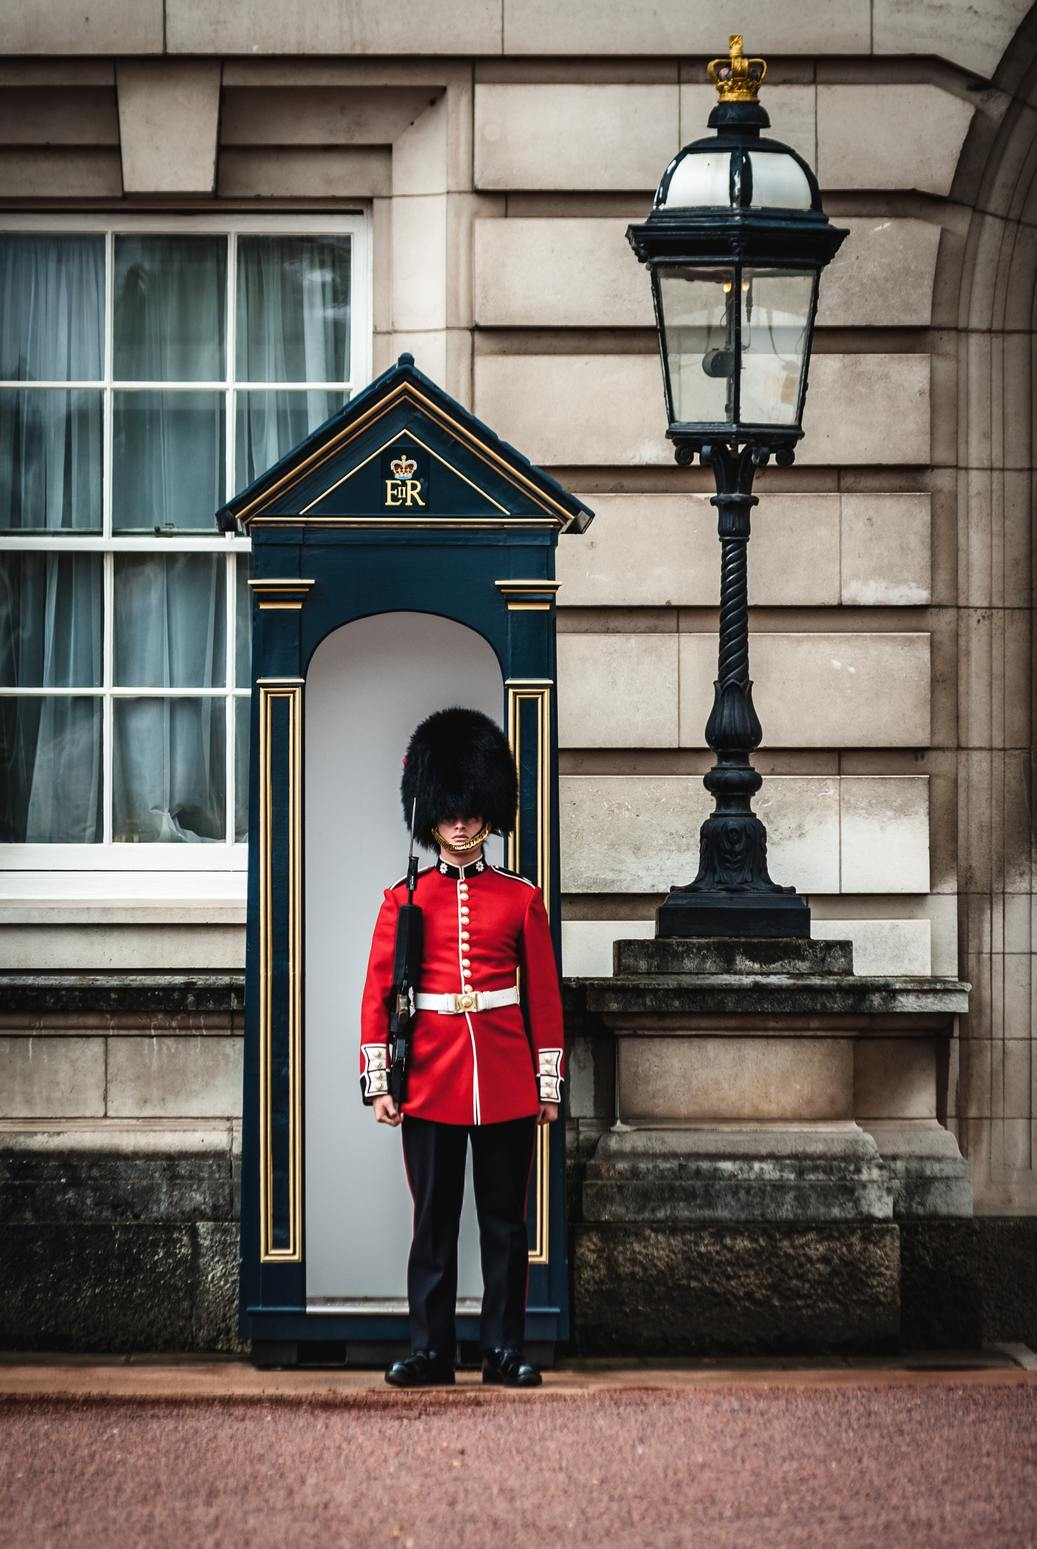 Guard of the Palace in London